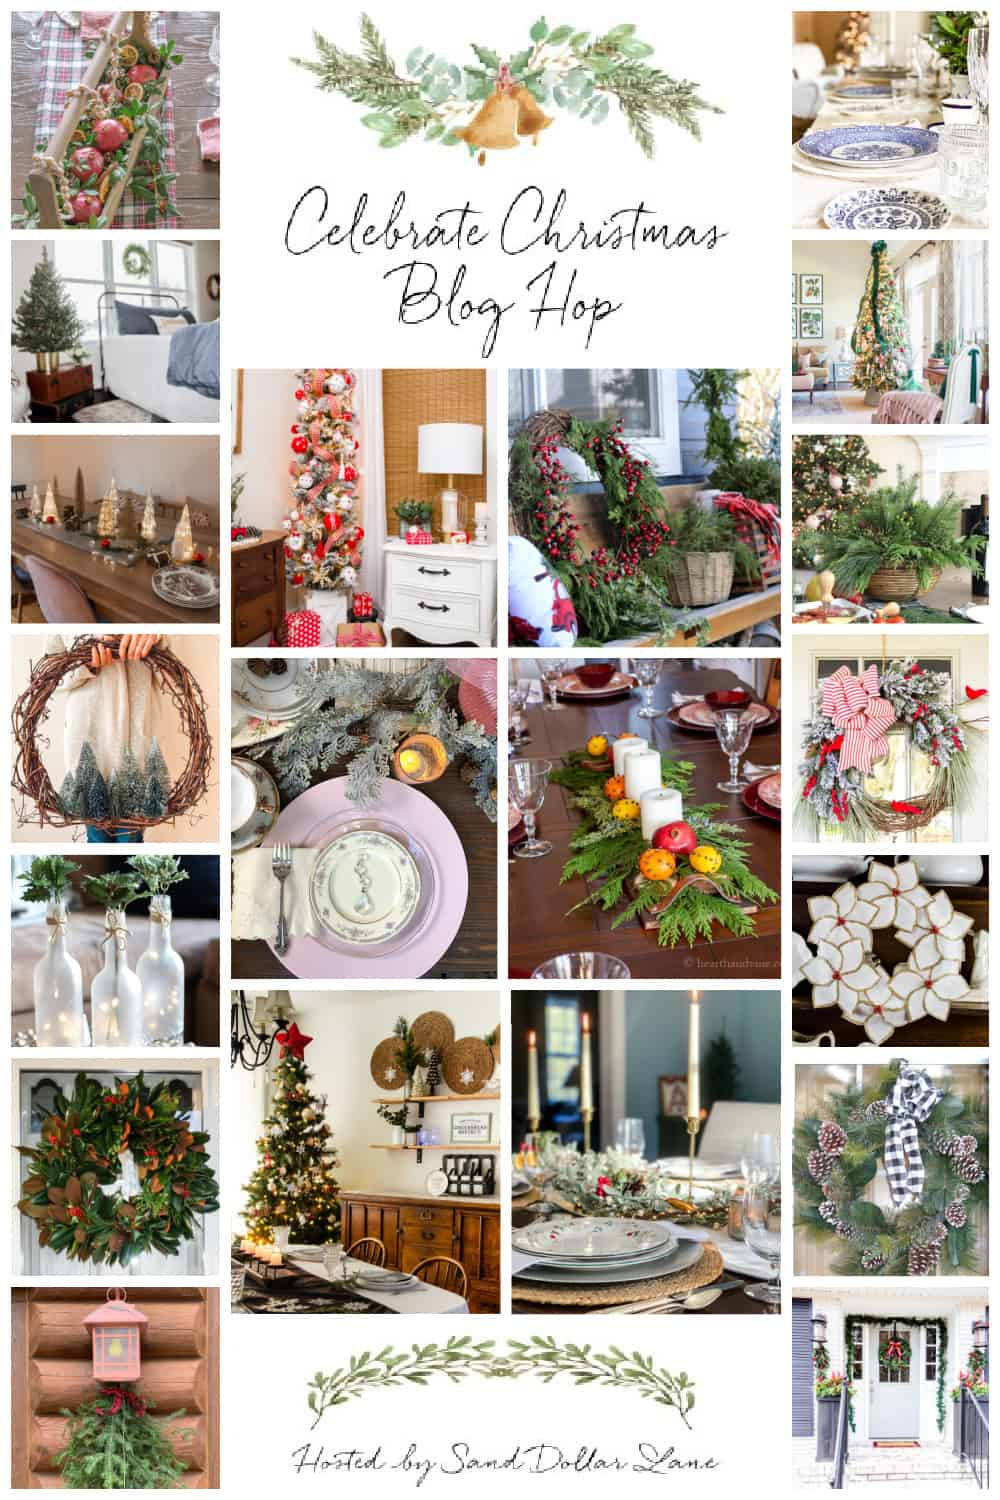 collage showing Christmas tree, tablescape, centerpiece, wreath and door decorating ideas